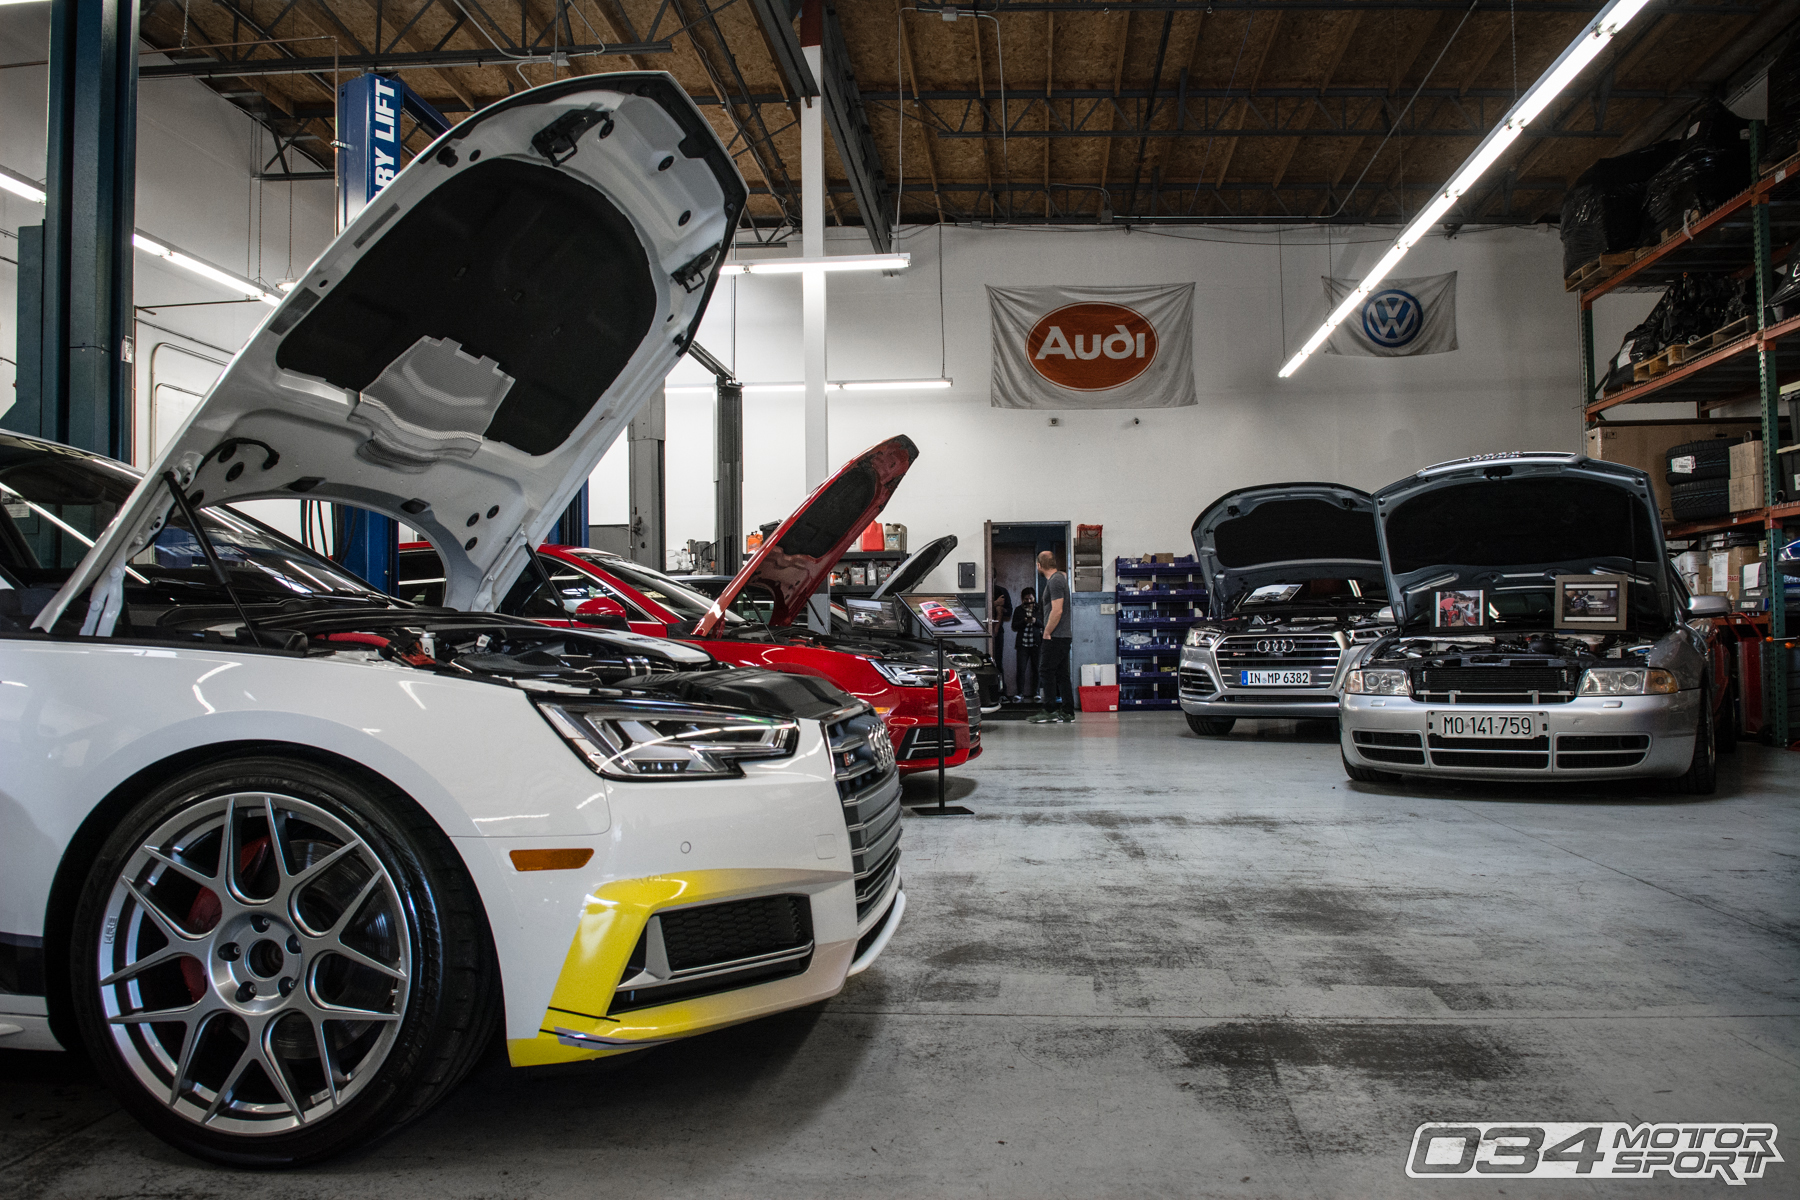 034Motorsport WinterFest 2018 Open House